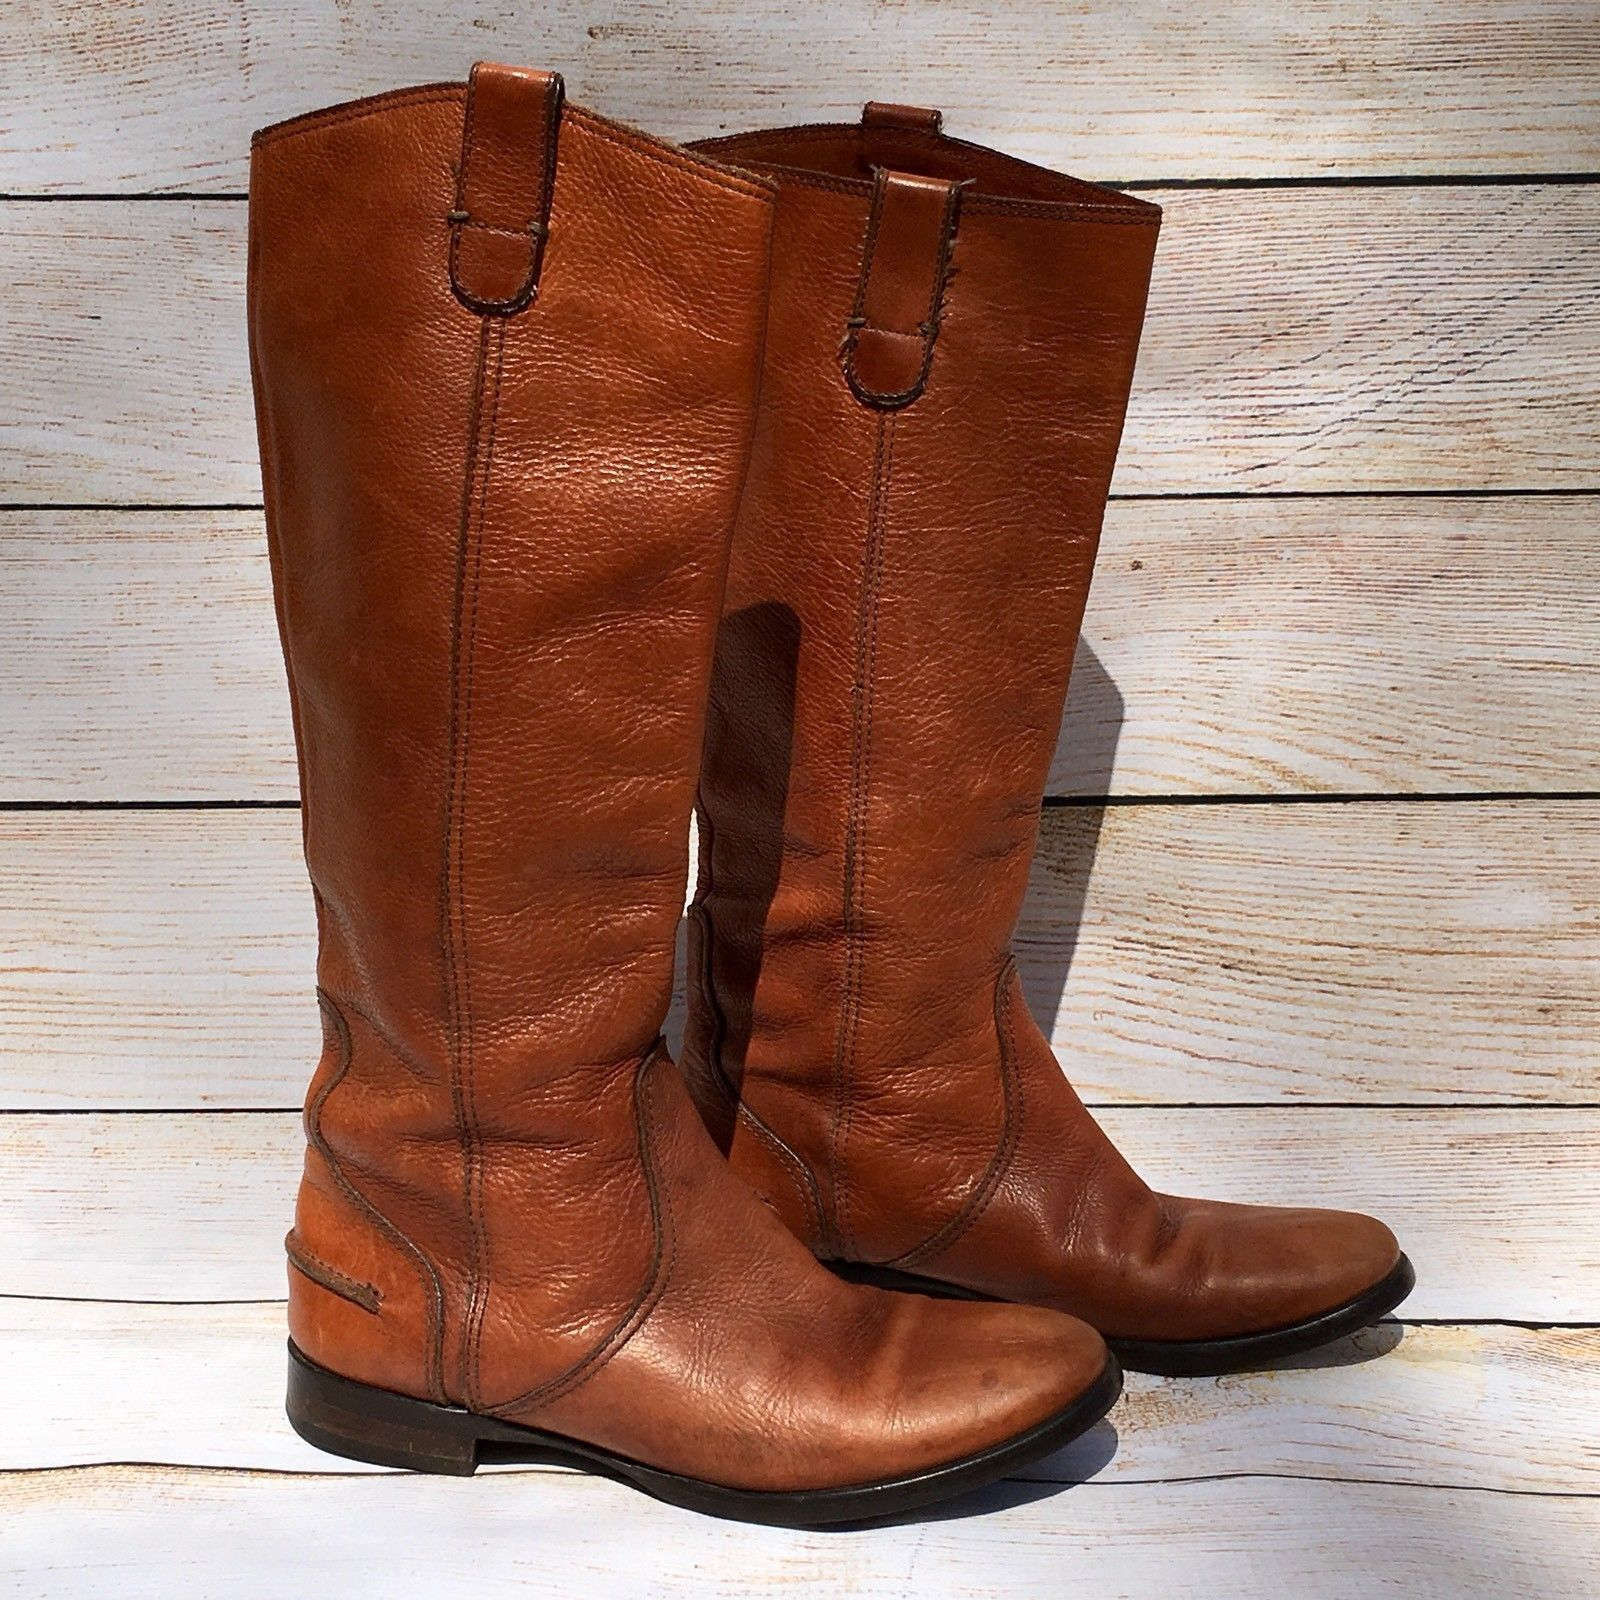 c116e51118dac Italian Leather Leather Leather Riding Boots 6.5 Cognac Brown ...